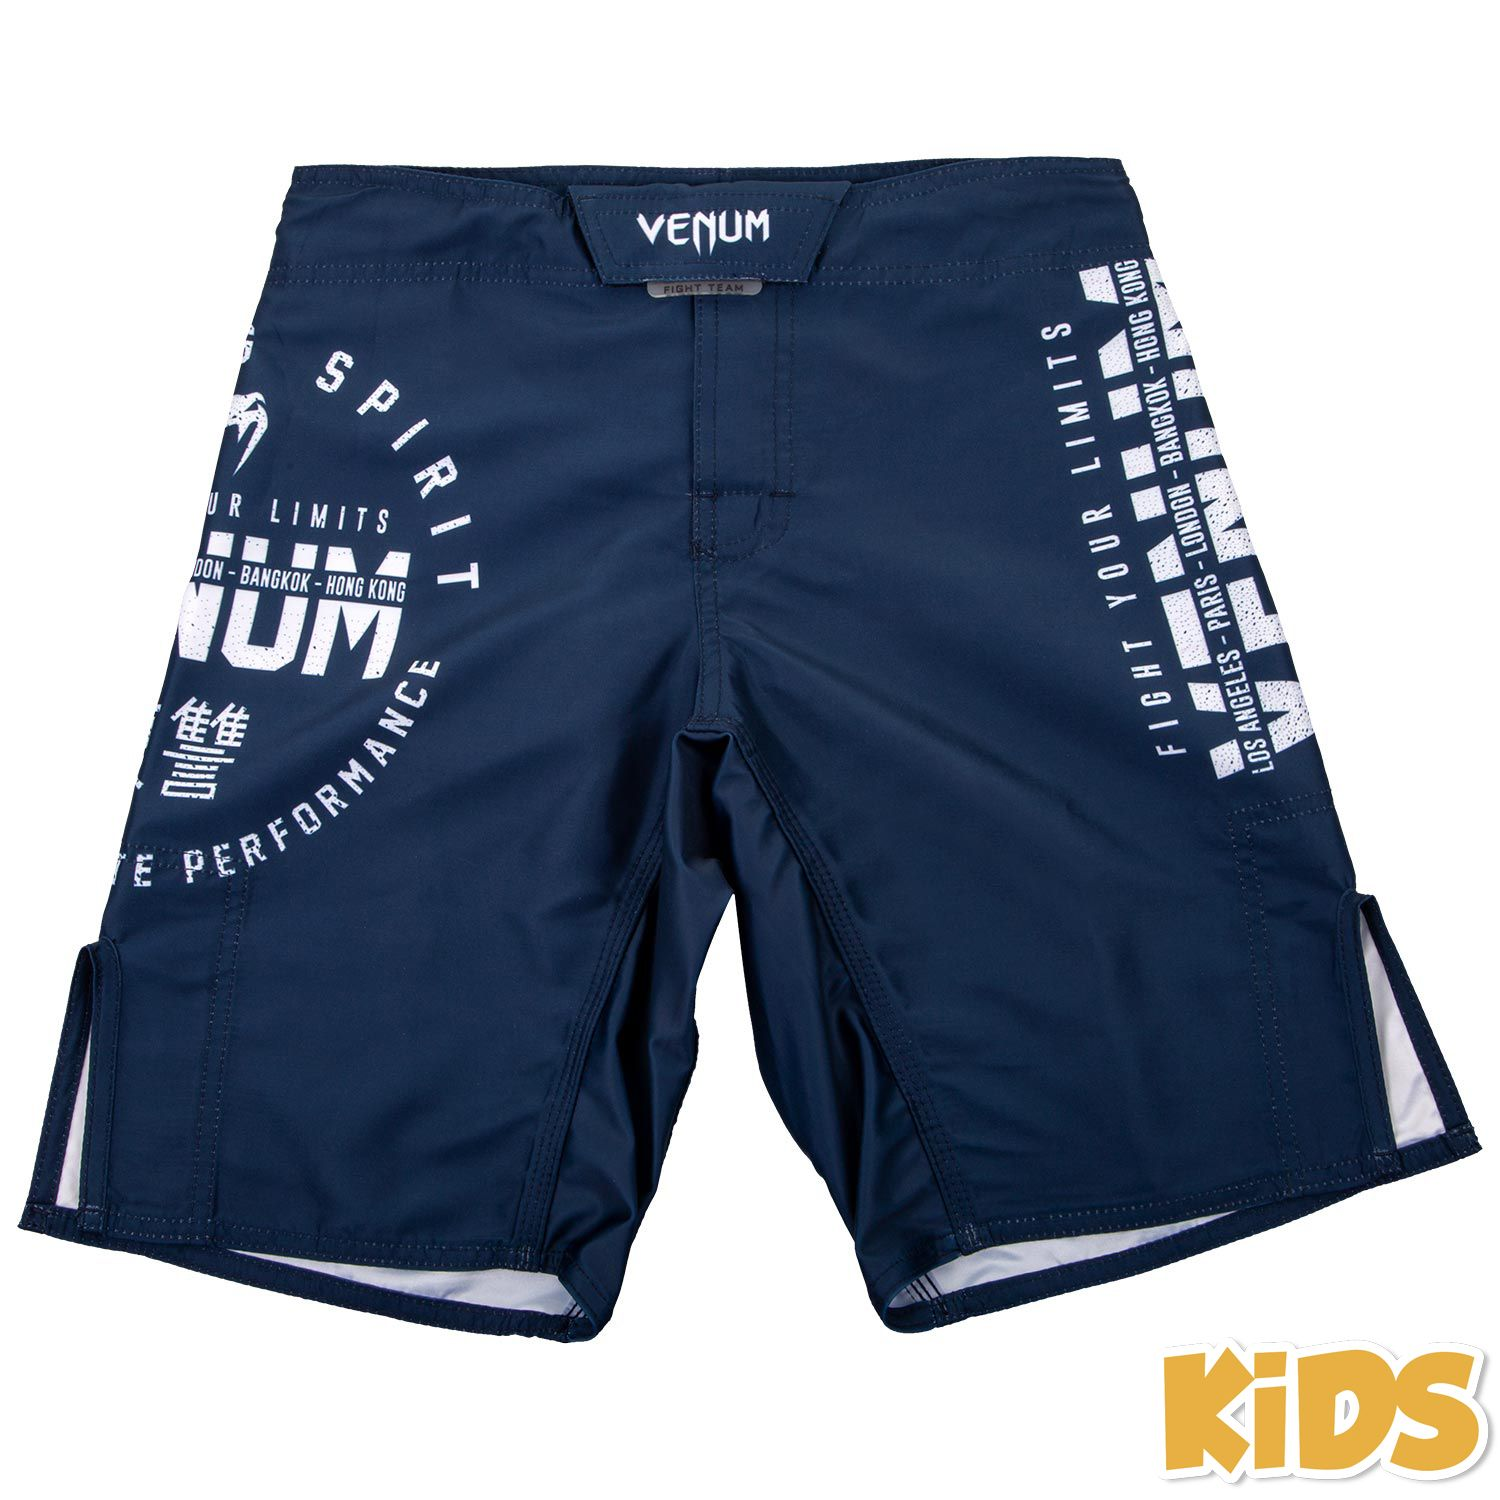 Venum Signature Kids Fightshorts - Navy Blue